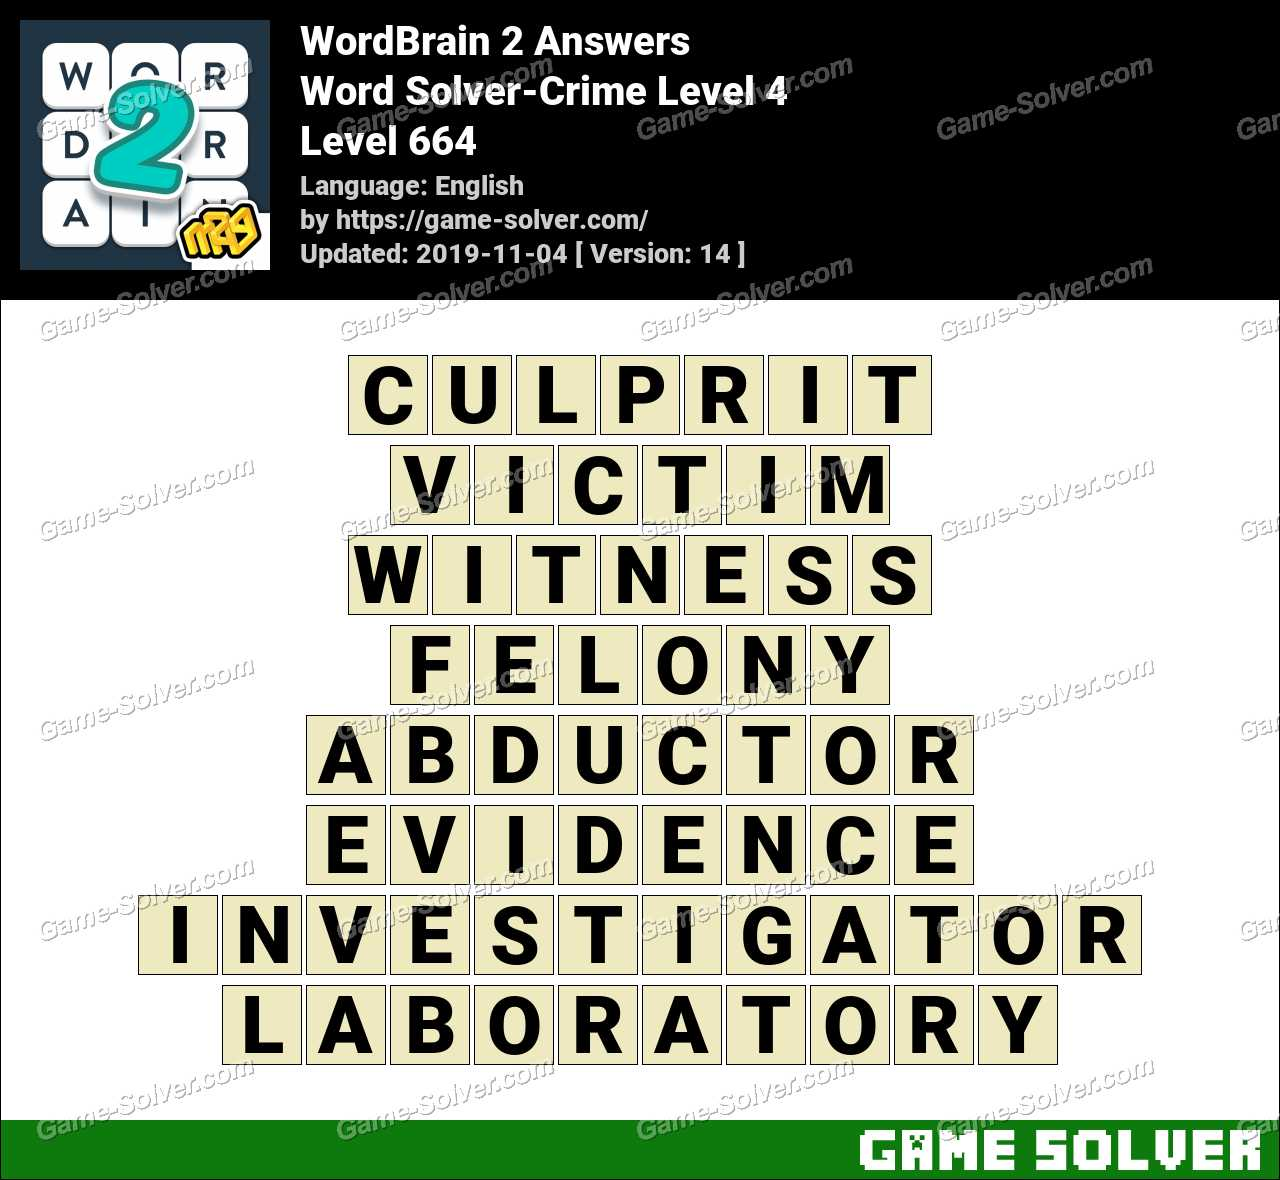 Word Solver Crime Level 4 Answers